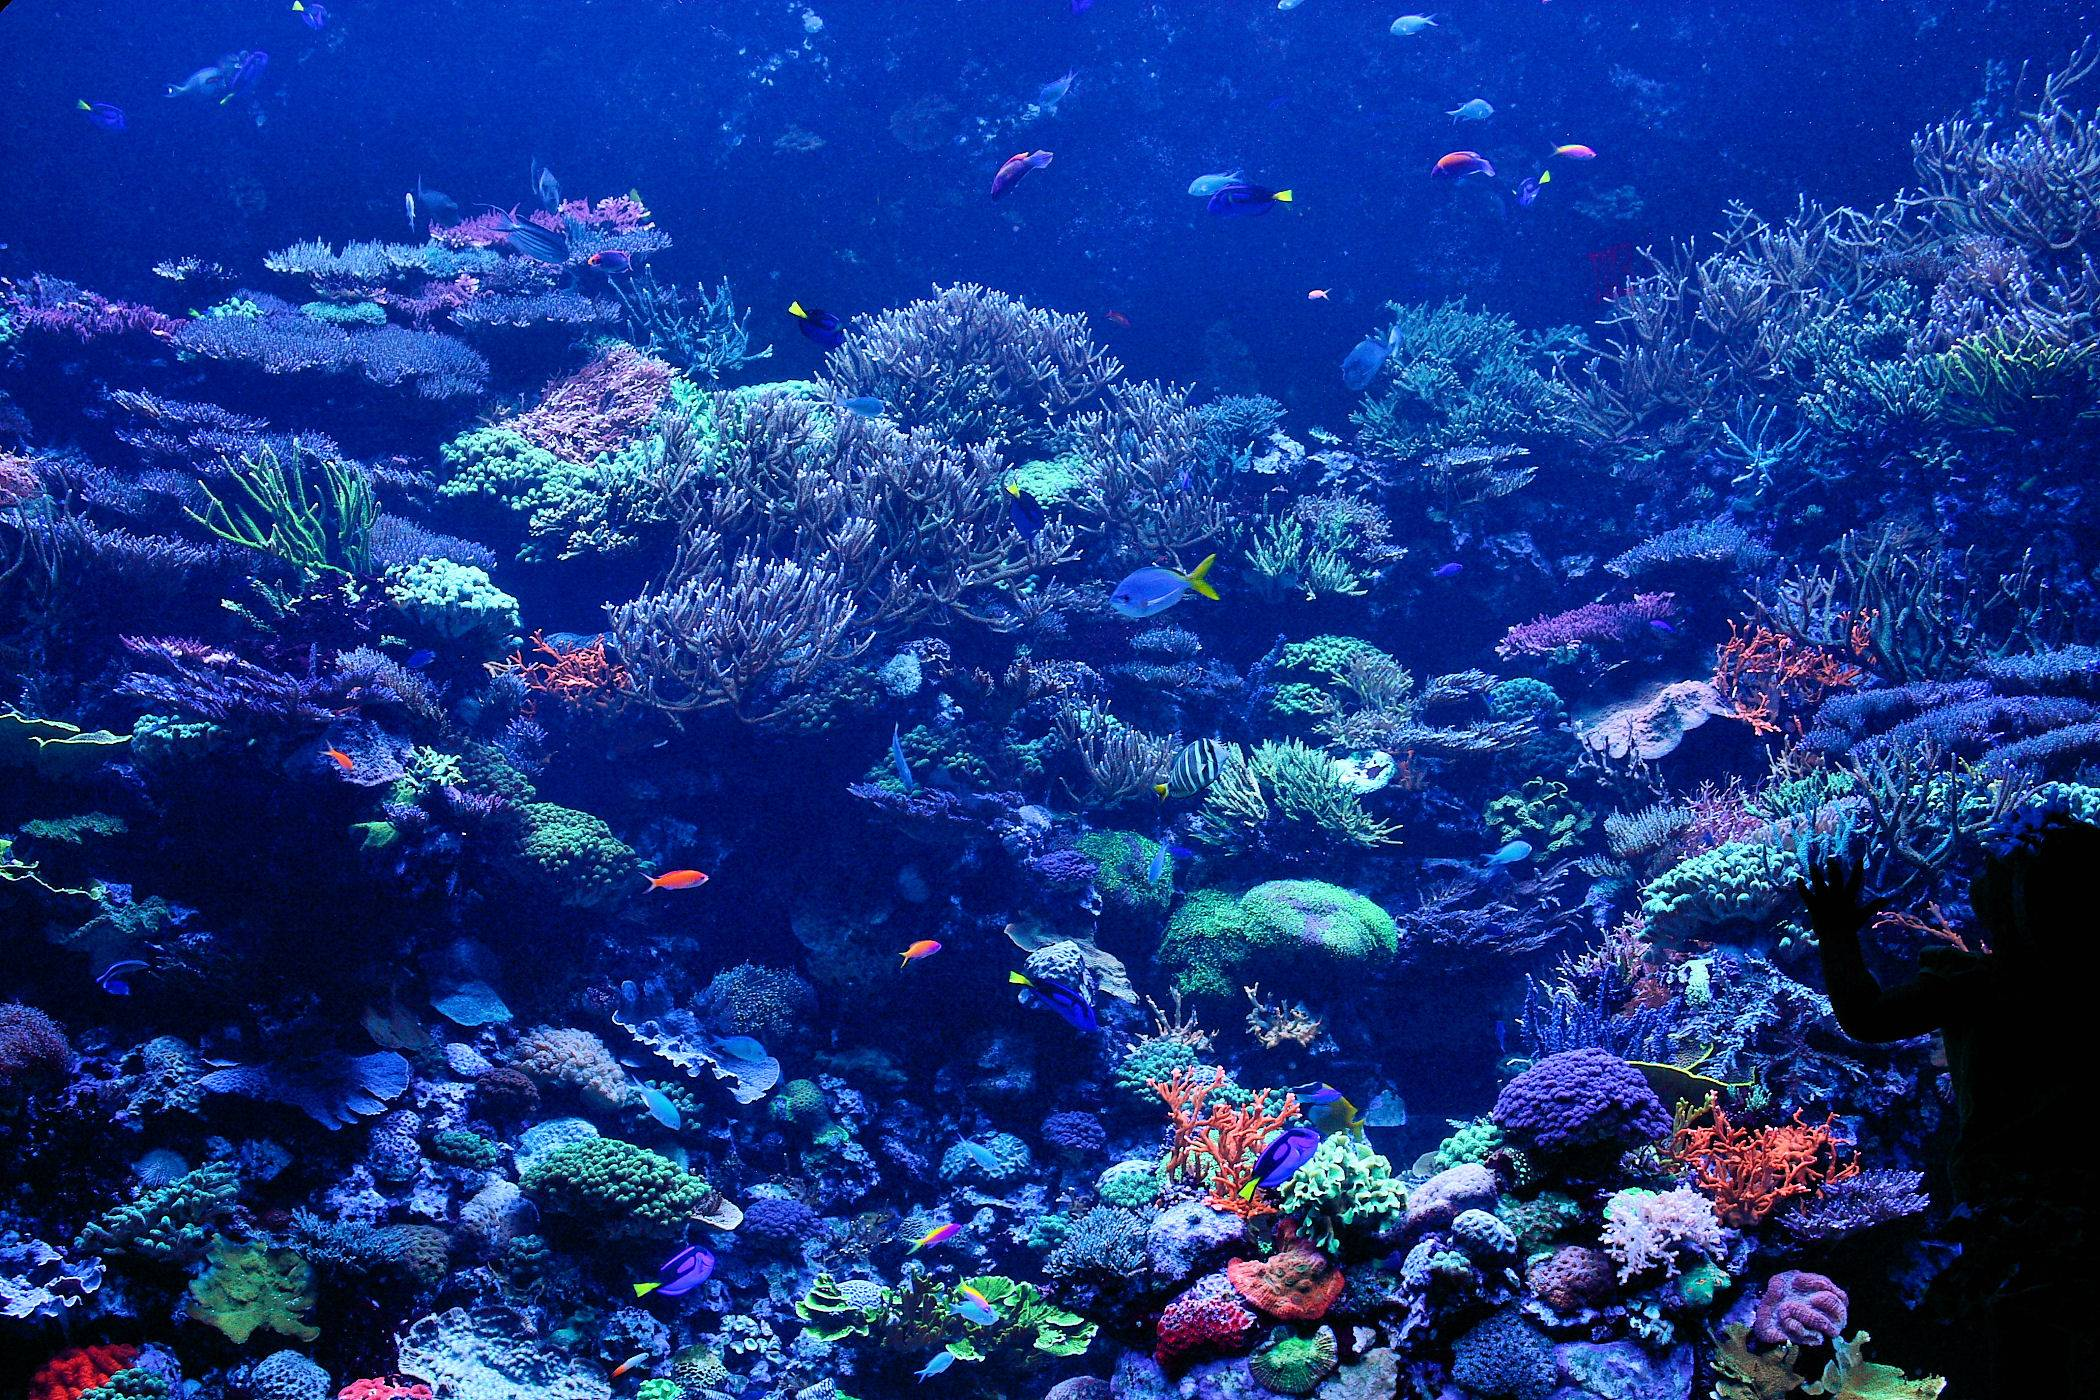 Hd wallpaper cave - Hd Coral Reef Wallpaper Images Amp Pictures Becuo